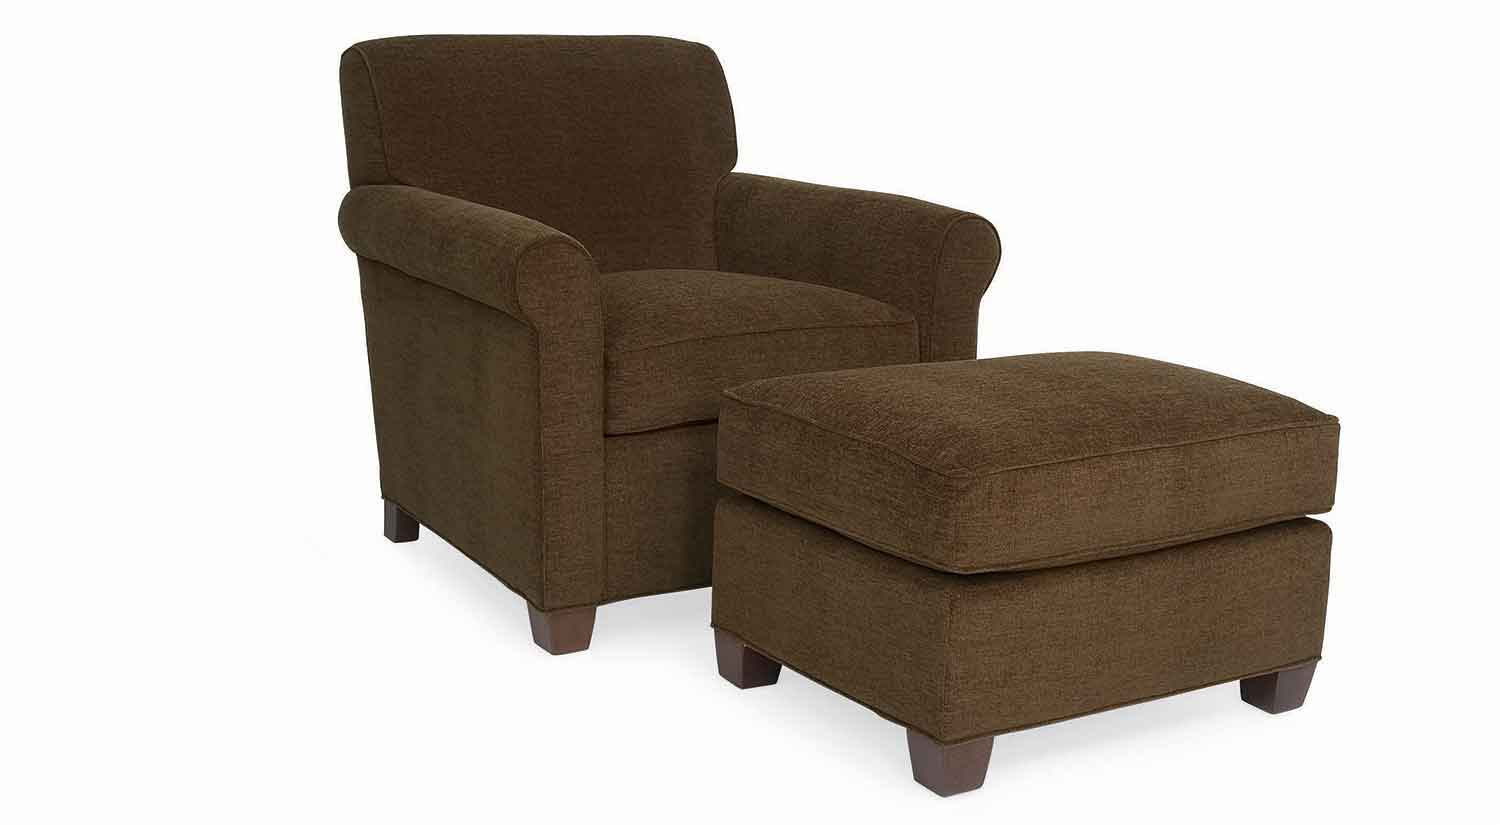 circle furniture chairs oversized for living room society chair comfortable ma